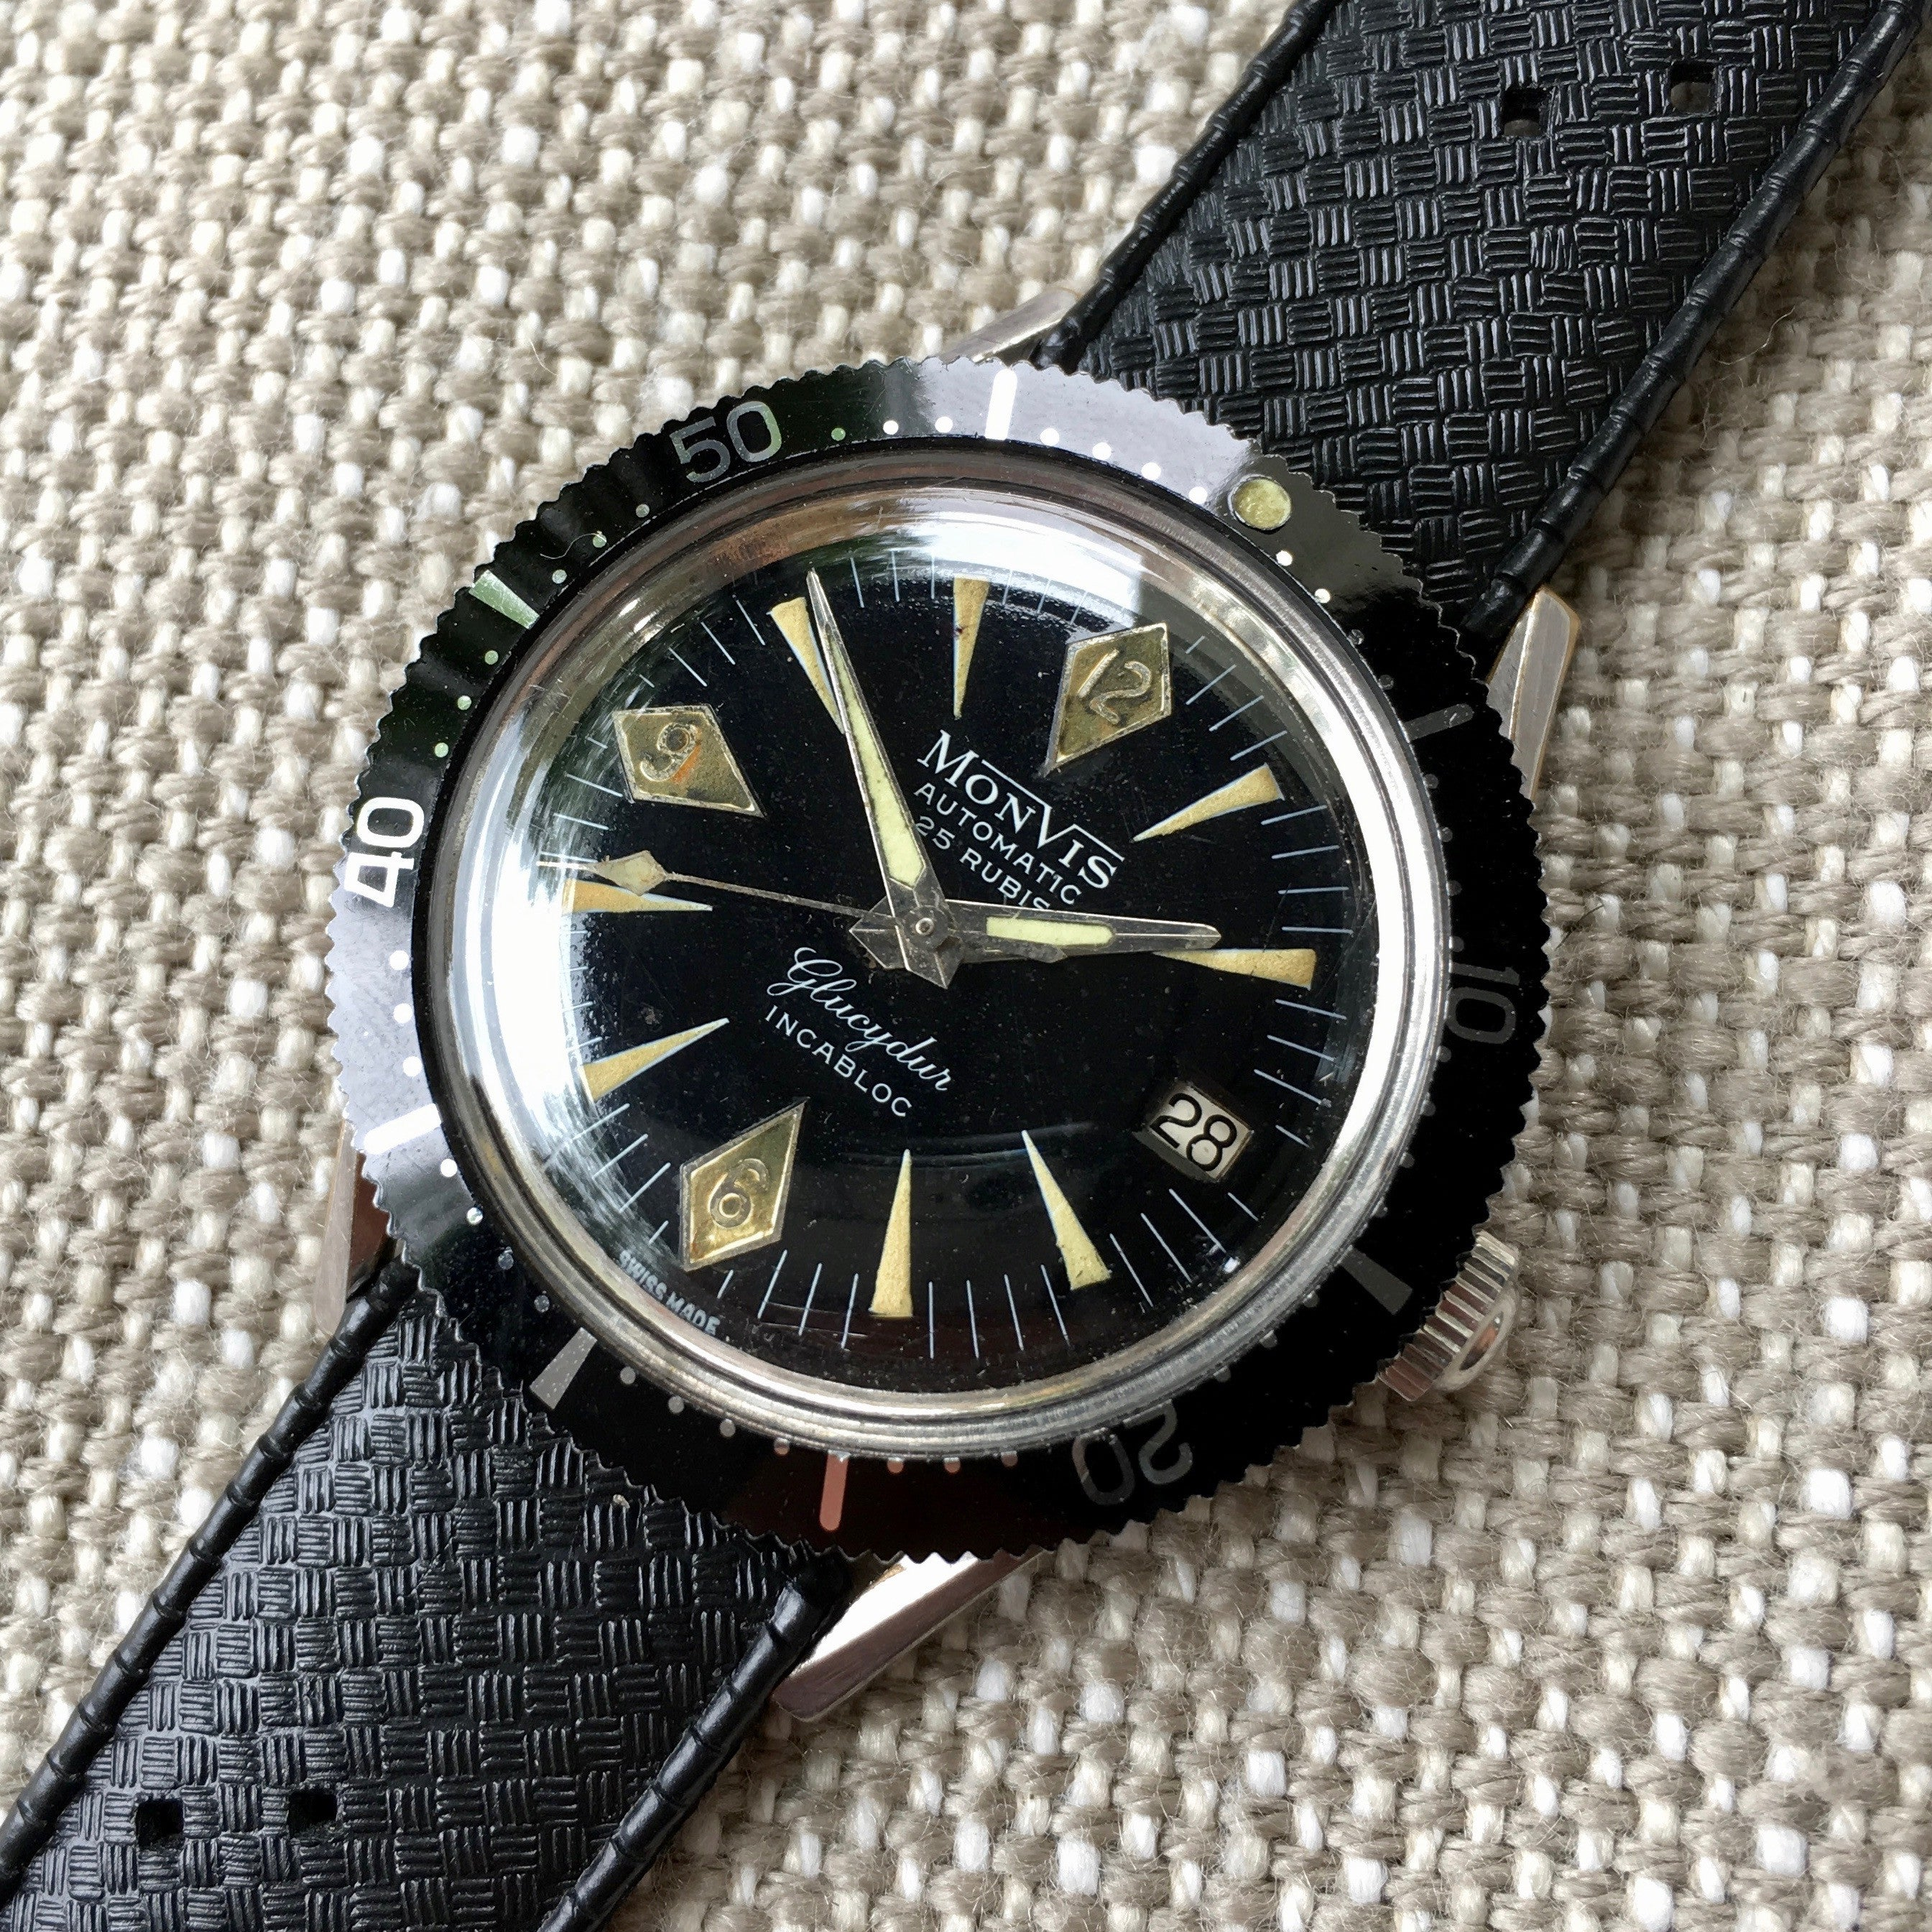 Vintage Monvis Glucydur Divers Incabloc Automatic Date Black Stainless Steel Wristwatch - Hashtag Watch Company